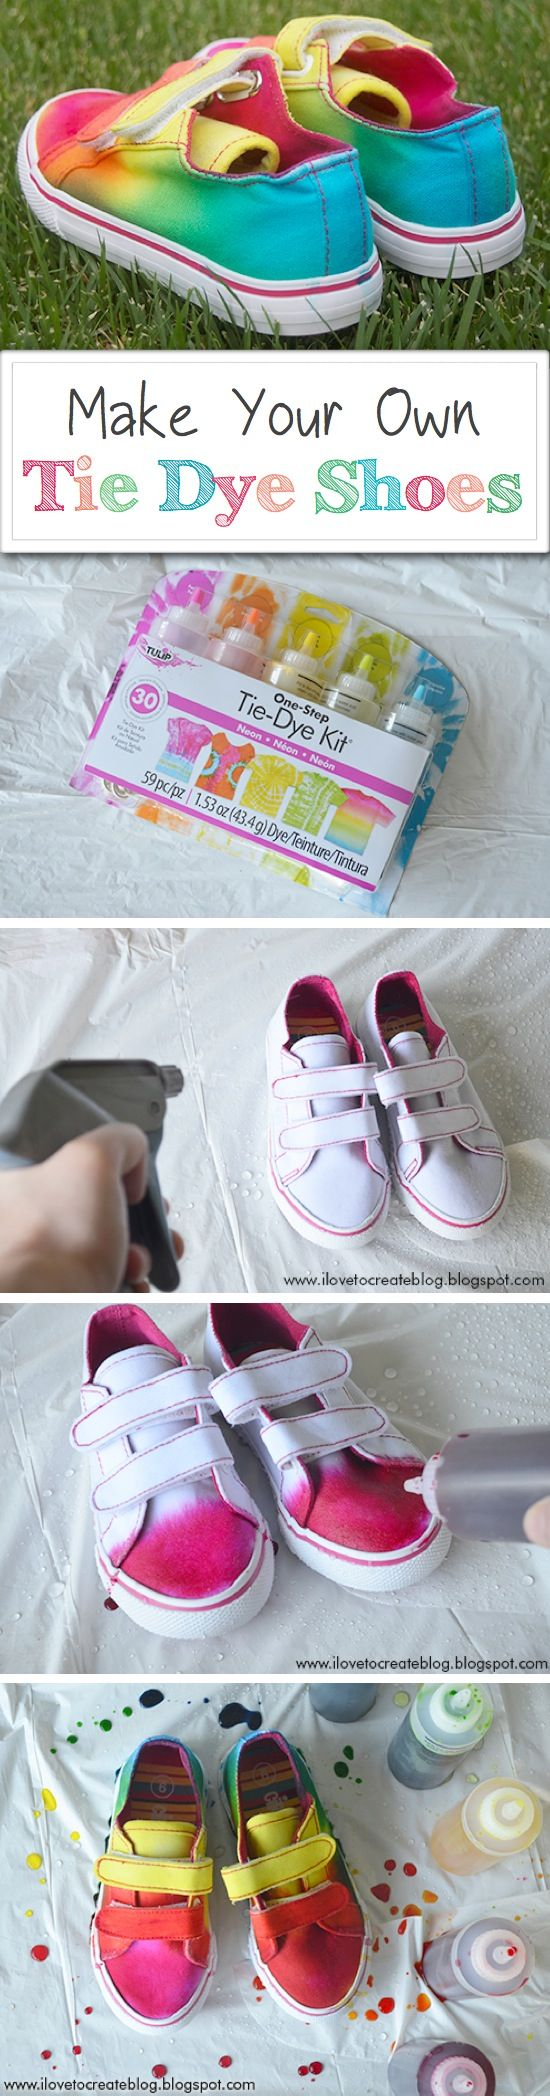 Make Your Own Tie Dye Shoes Tutorial on I Love to Create at http://www.ilovetocreateblog.blogspot.com/2013/05/how-to-make-rainbow-tie-dye-shoes.html